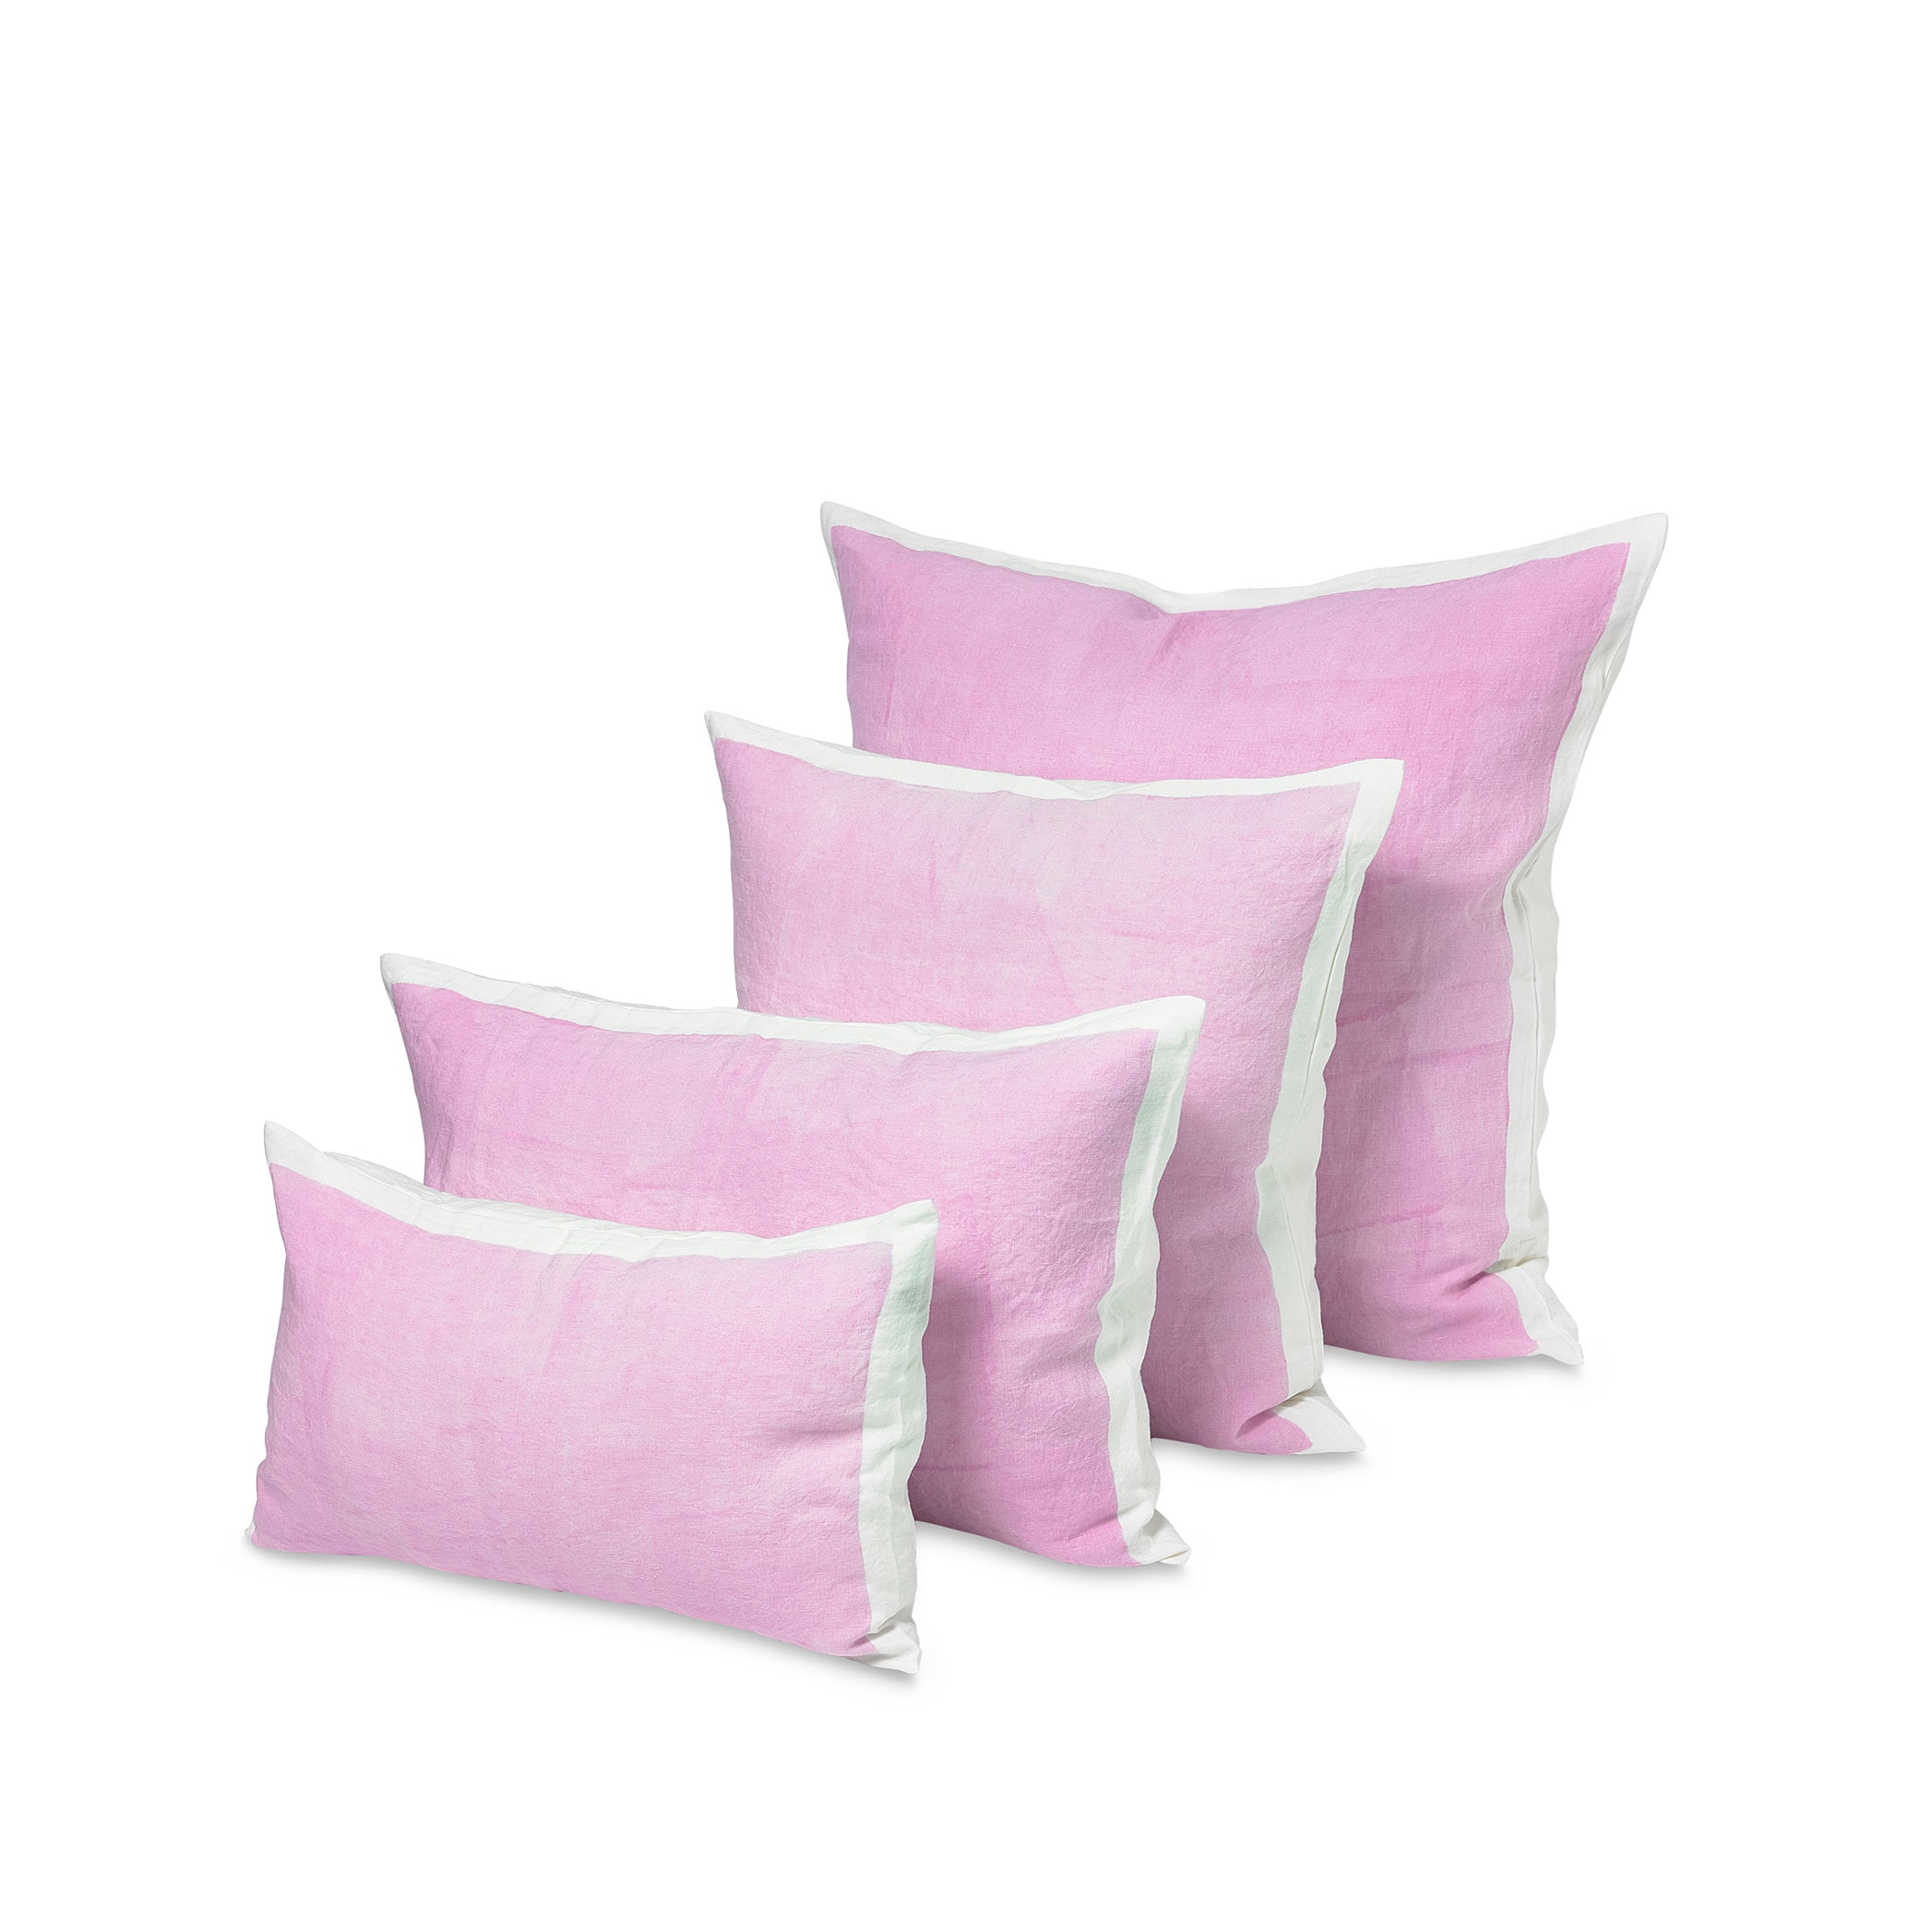 Hand Painted Linen Cushion in Pale Pink, 60cm x 60cm